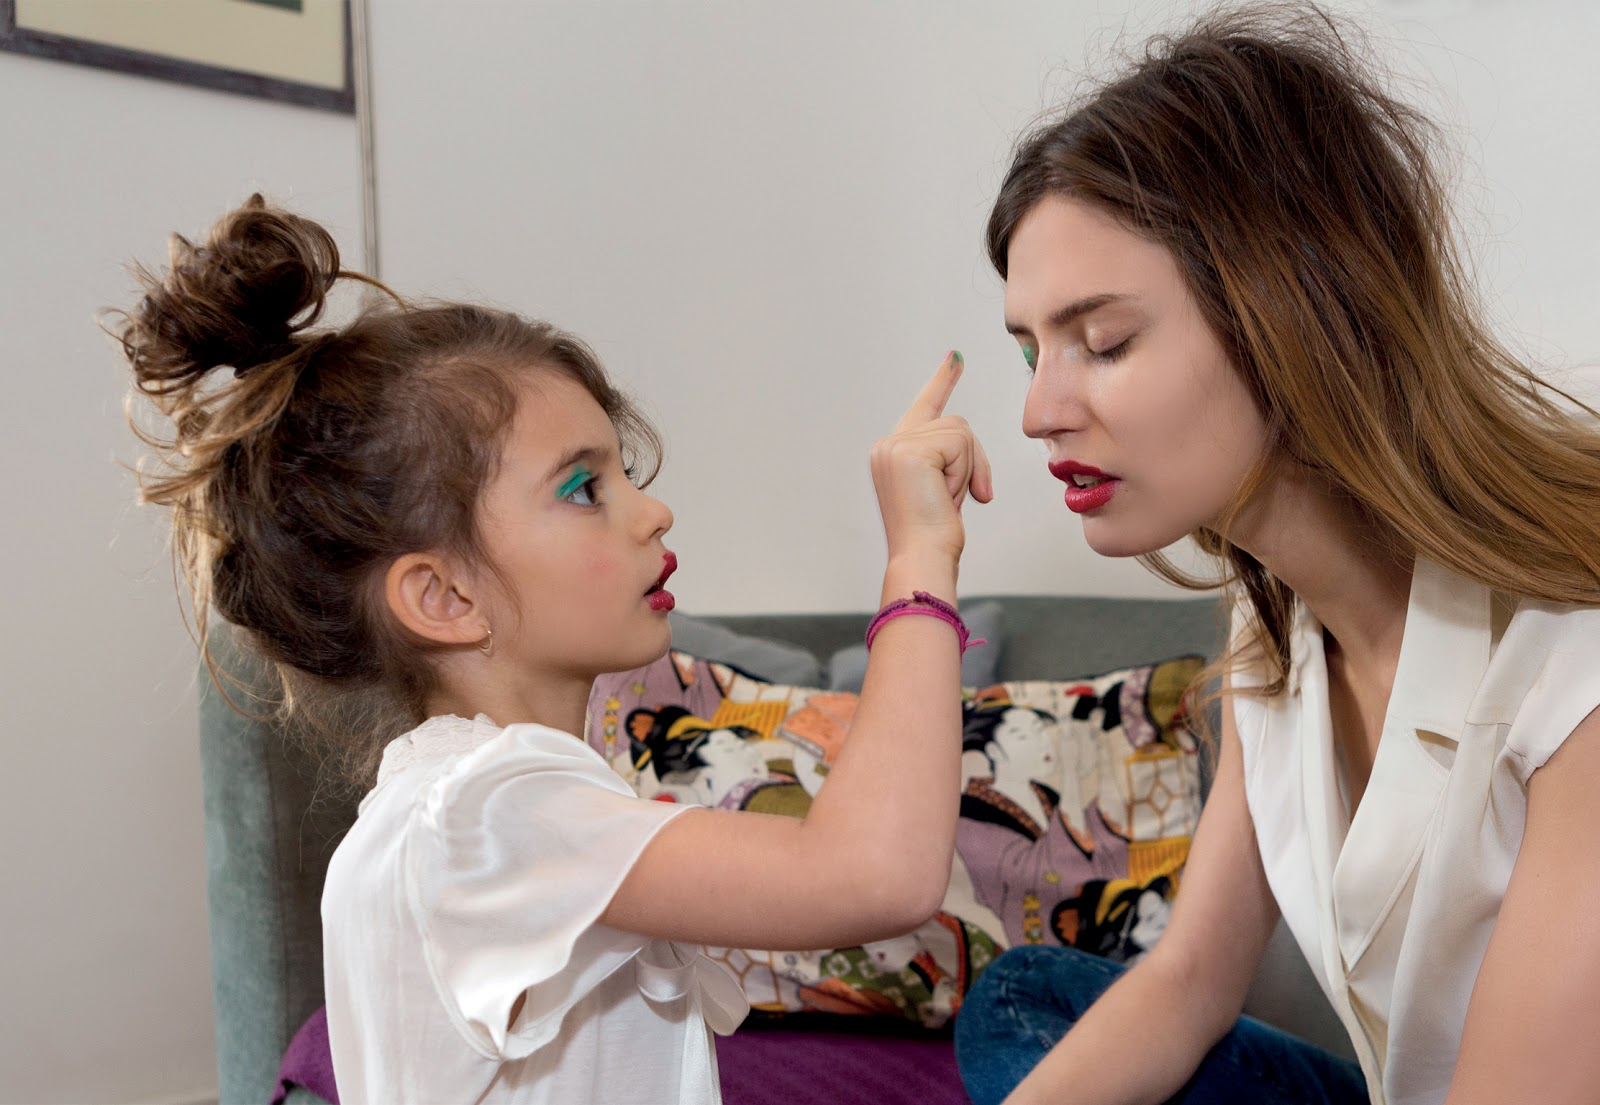 Bianca Balti And Matilde Lucidi By Martin Parr For Grey #8 ...